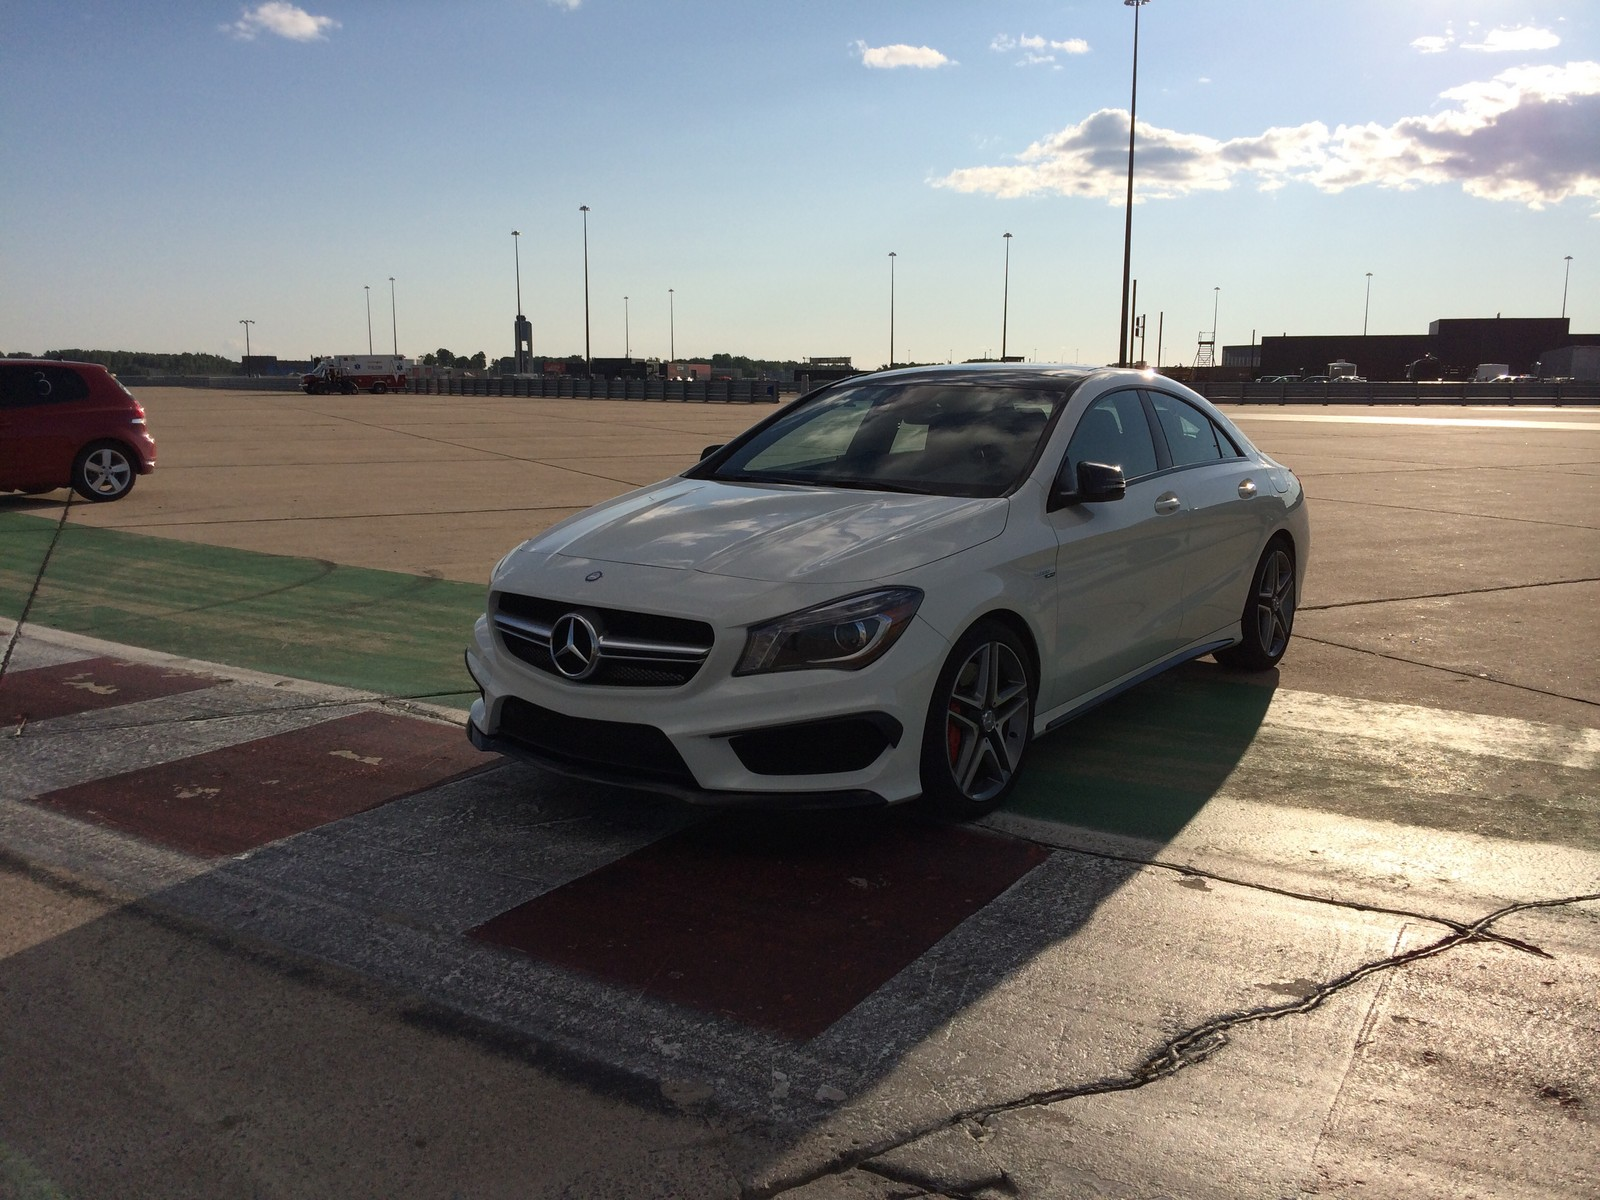 2014 mercedes benz cla45 amg 1 4 mile drag racing timeslip specs 0 60. Cars Review. Best American Auto & Cars Review